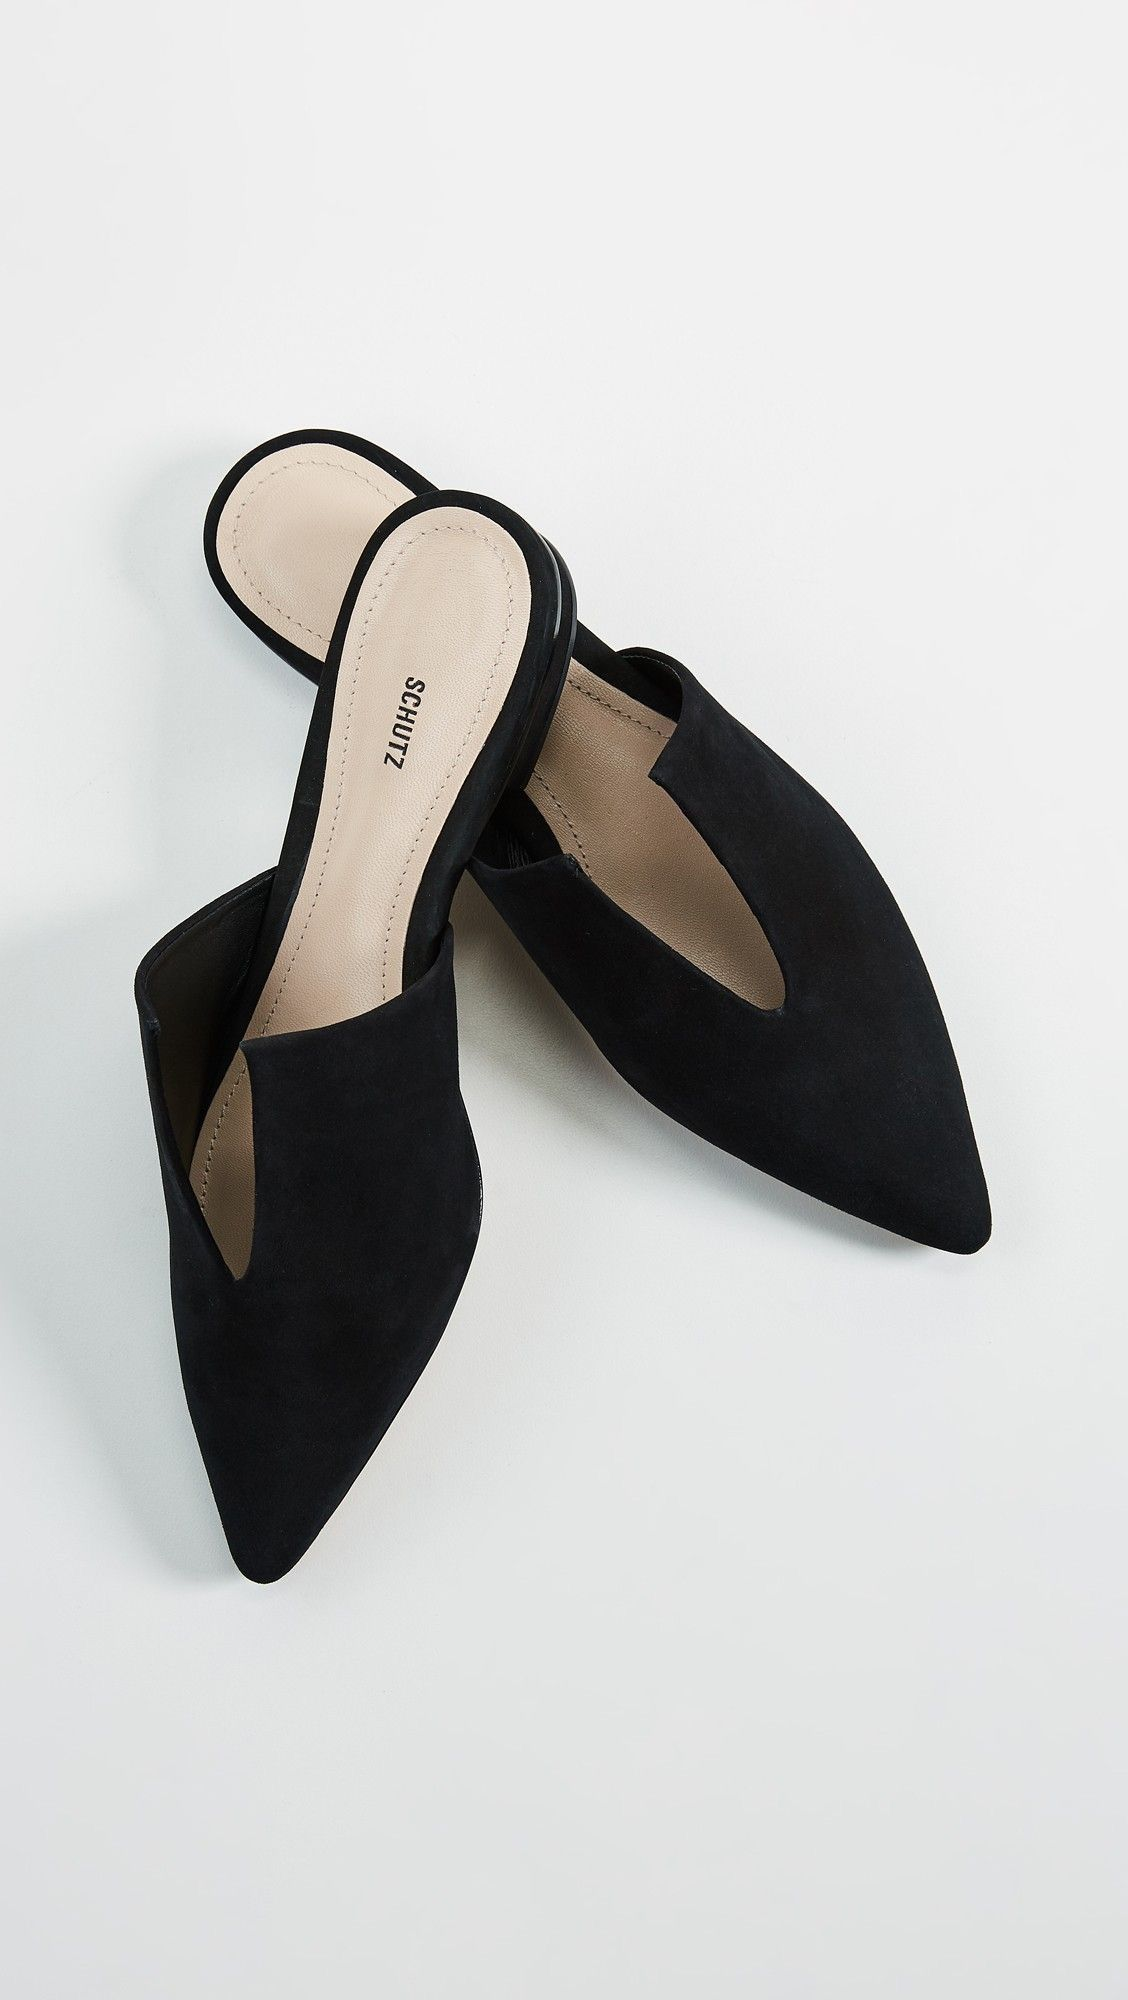 90a2994be377e Mules #flats #shoes | 1step ahead in 2019 | Shoes, Shoe boots ...